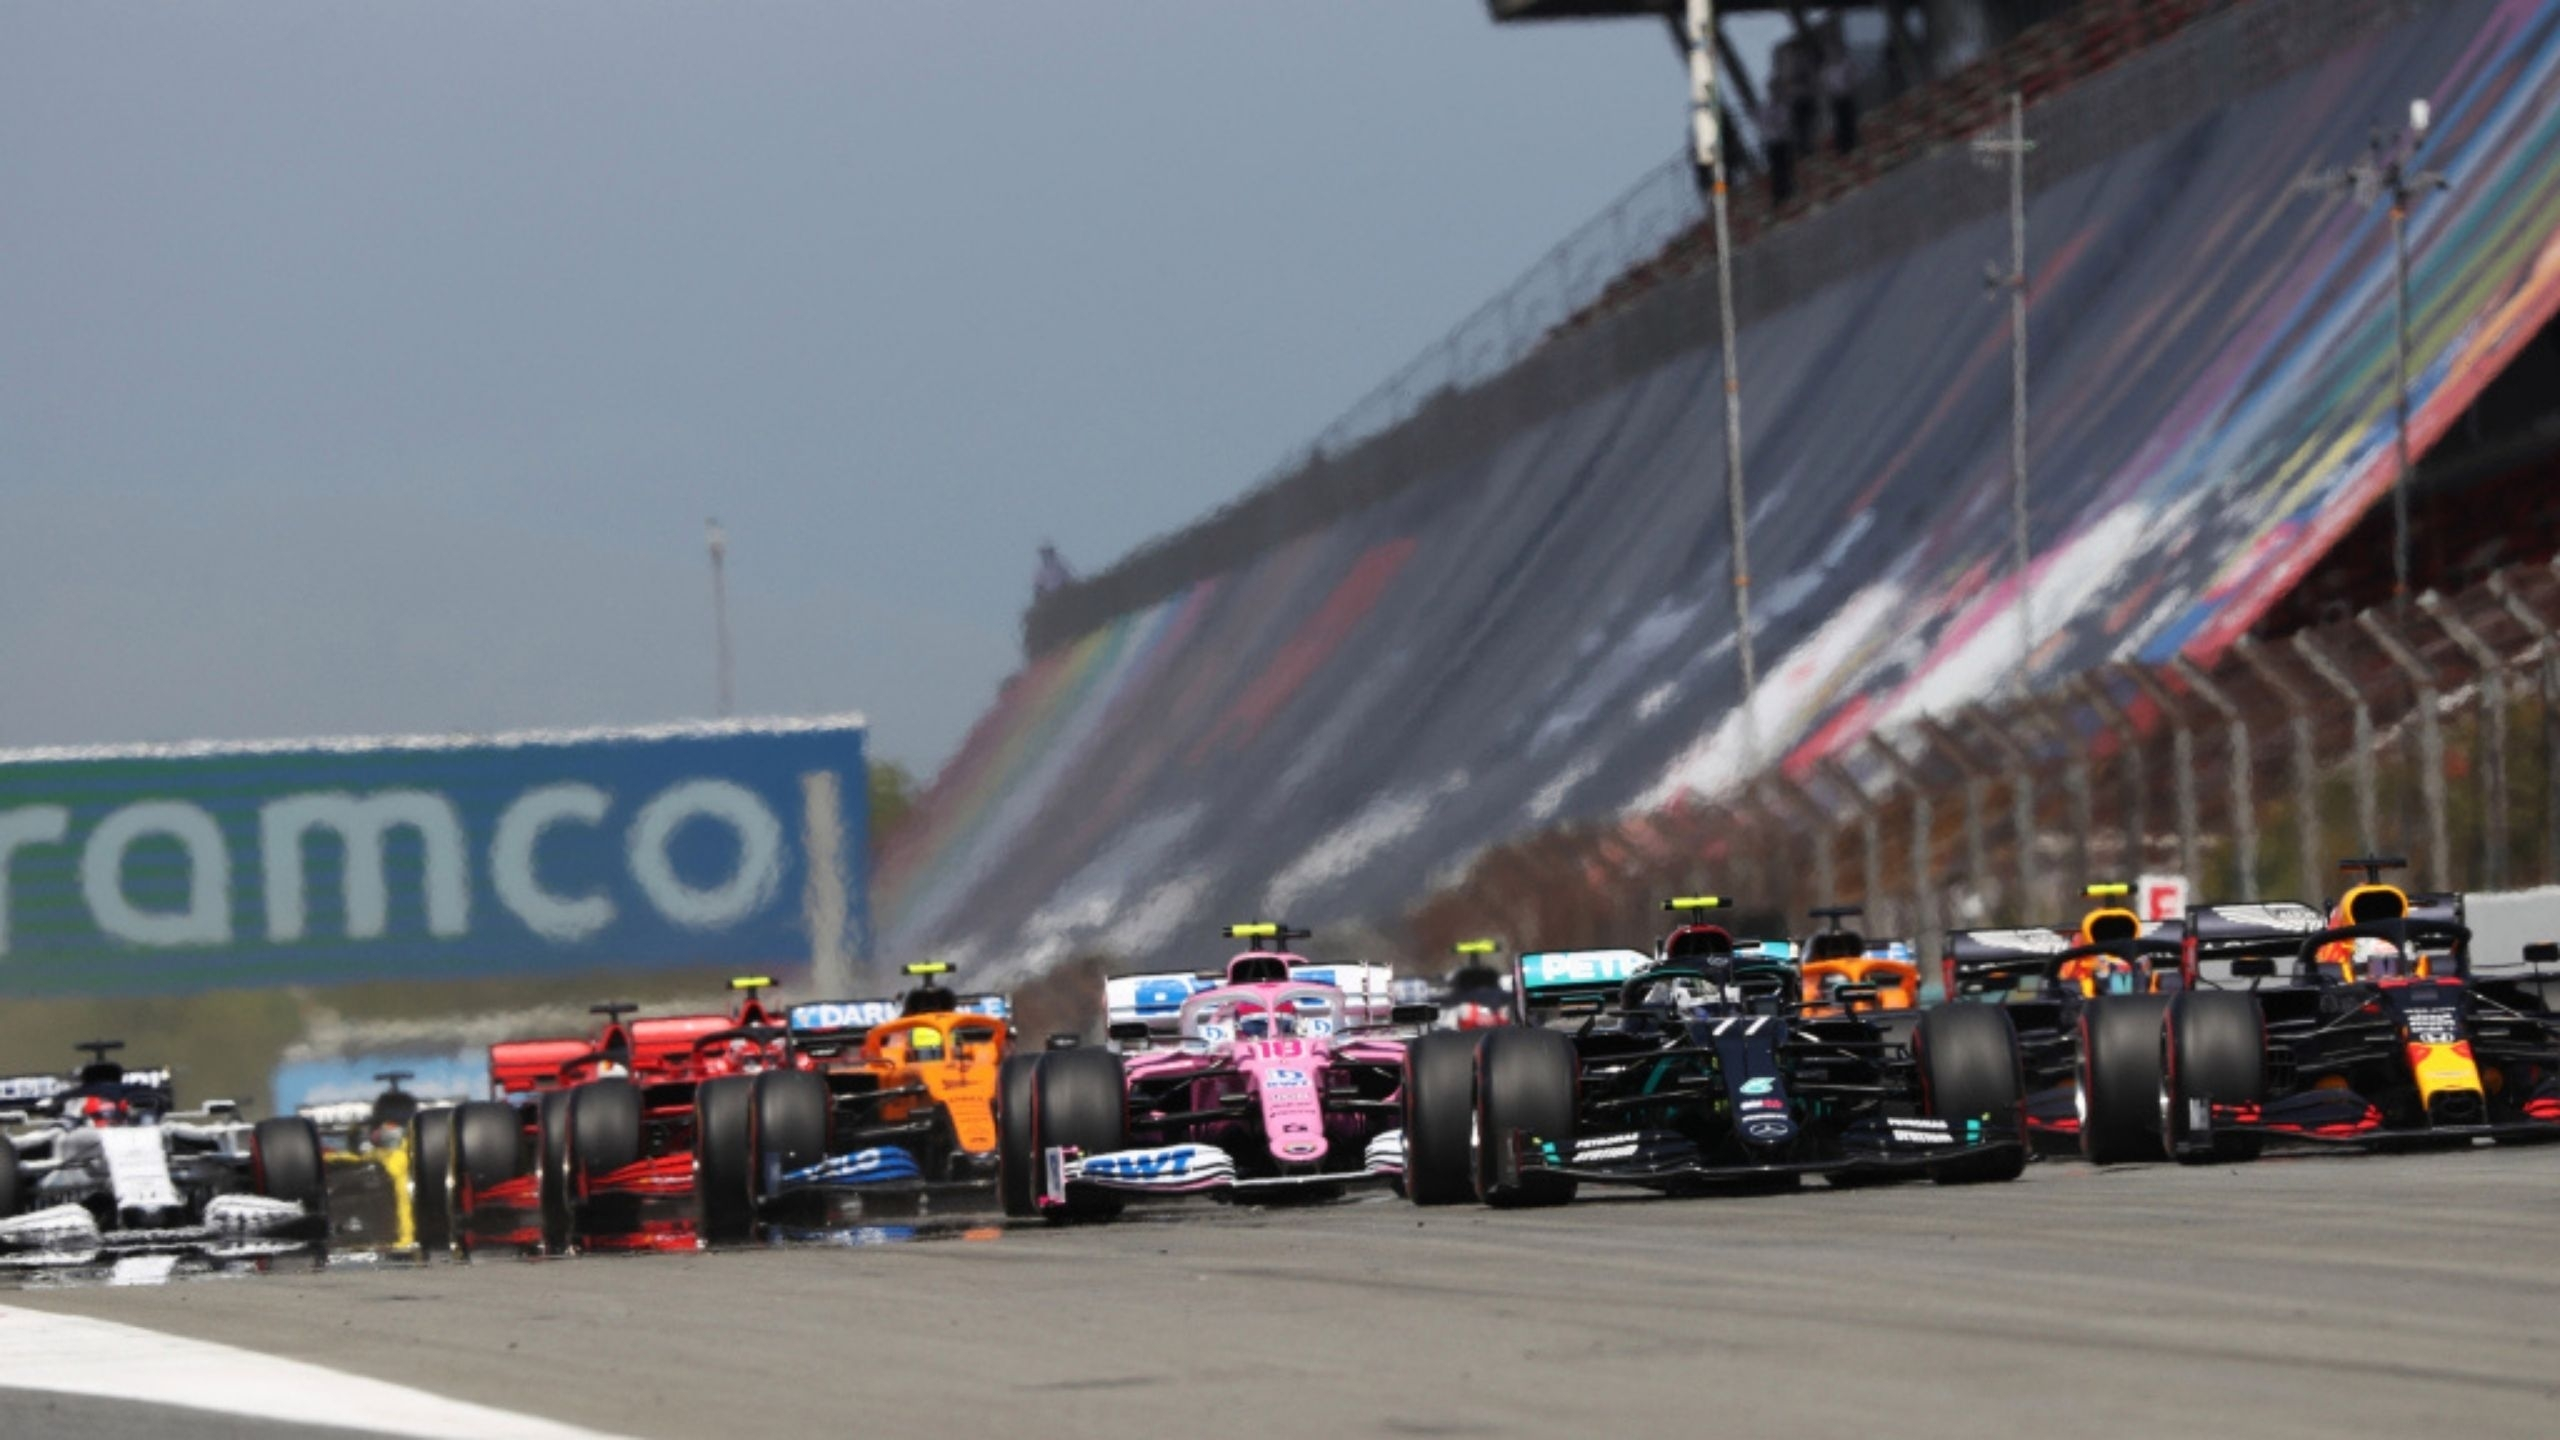 F1 2021 Calendar: Which Races Have Made It To The Longest